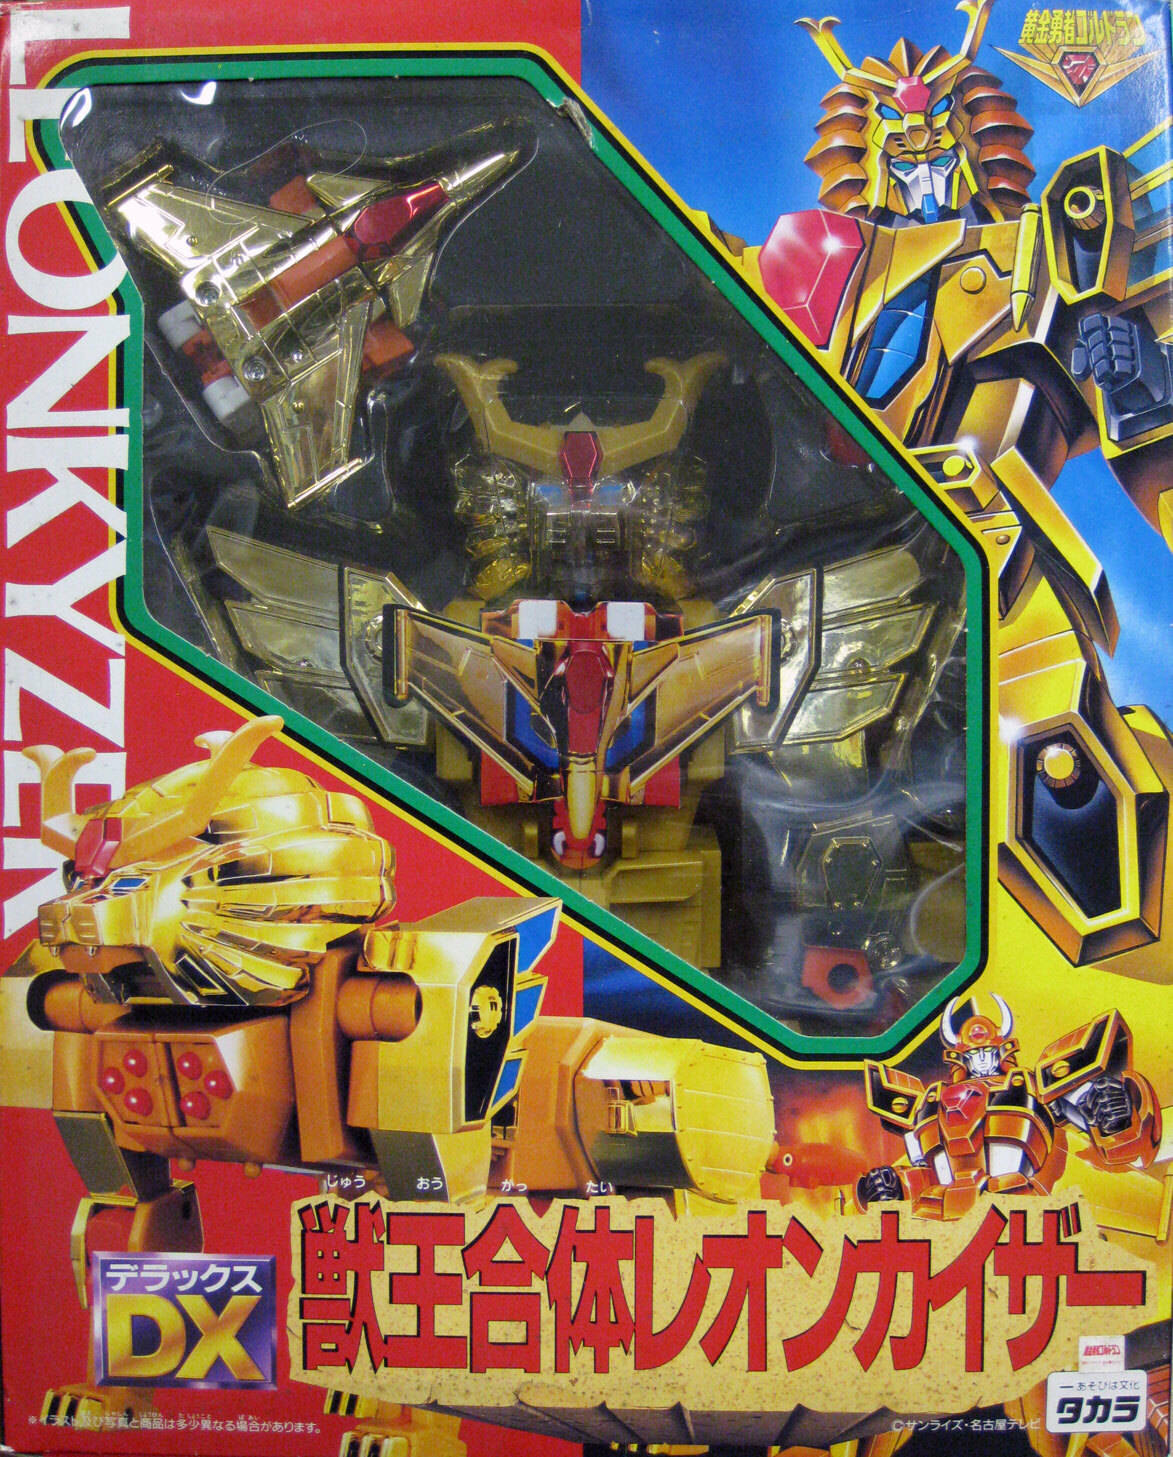 Japan Rare Takara The Brave of gold DX Leonkyzer vintage item For Collectors